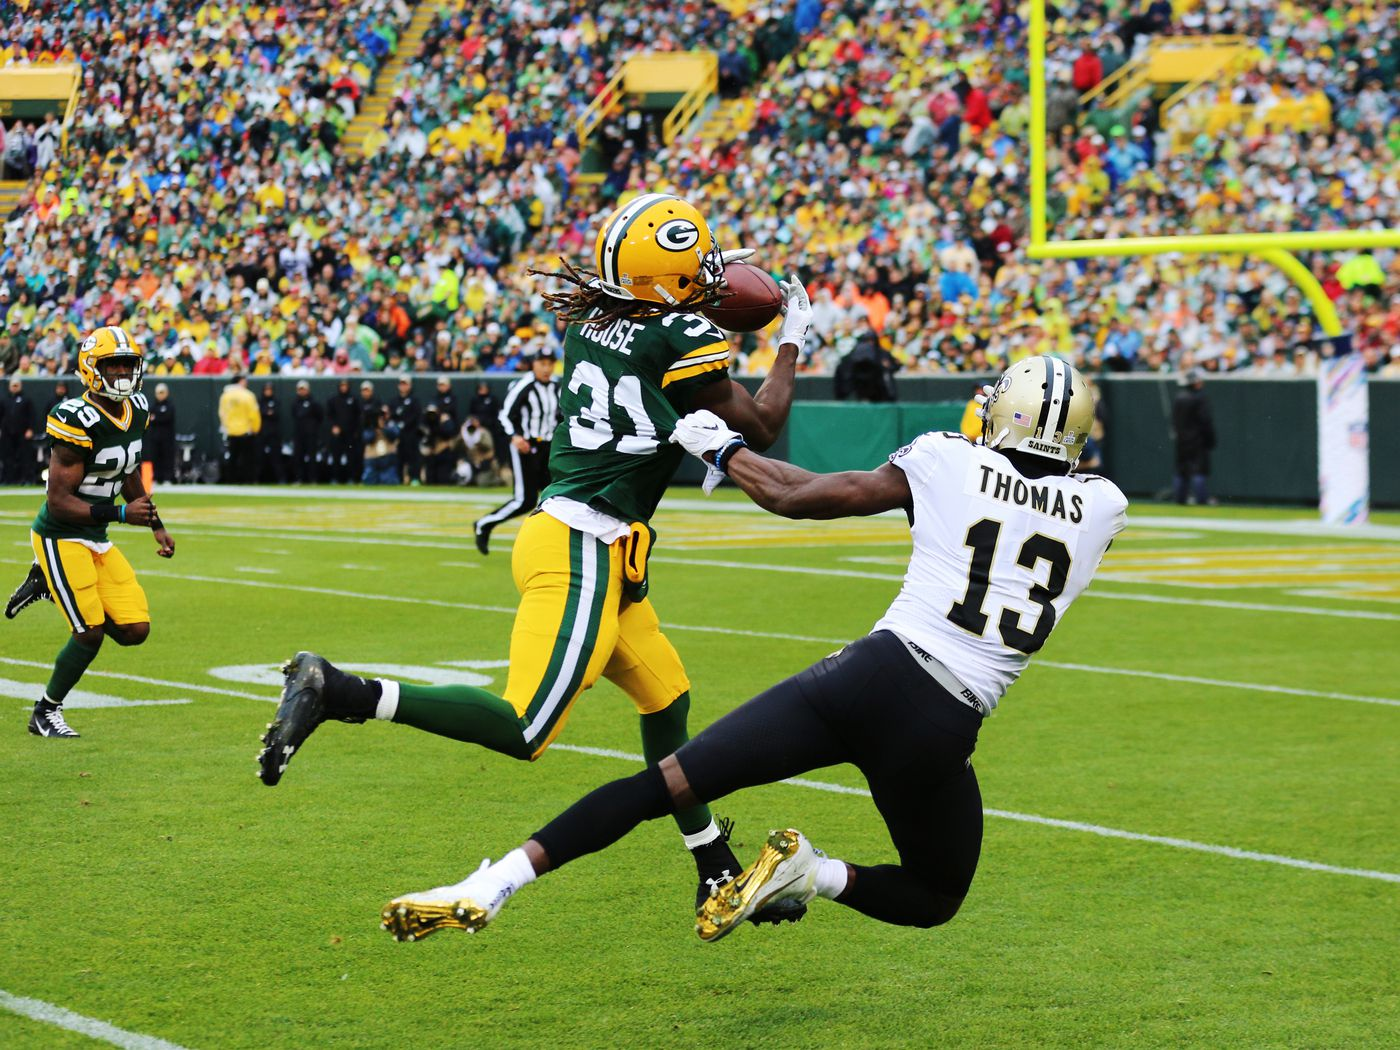 Packers Will Not Have To Face Saints Wr Michael Thomas In Week 3 Per Report Acme Packing Company